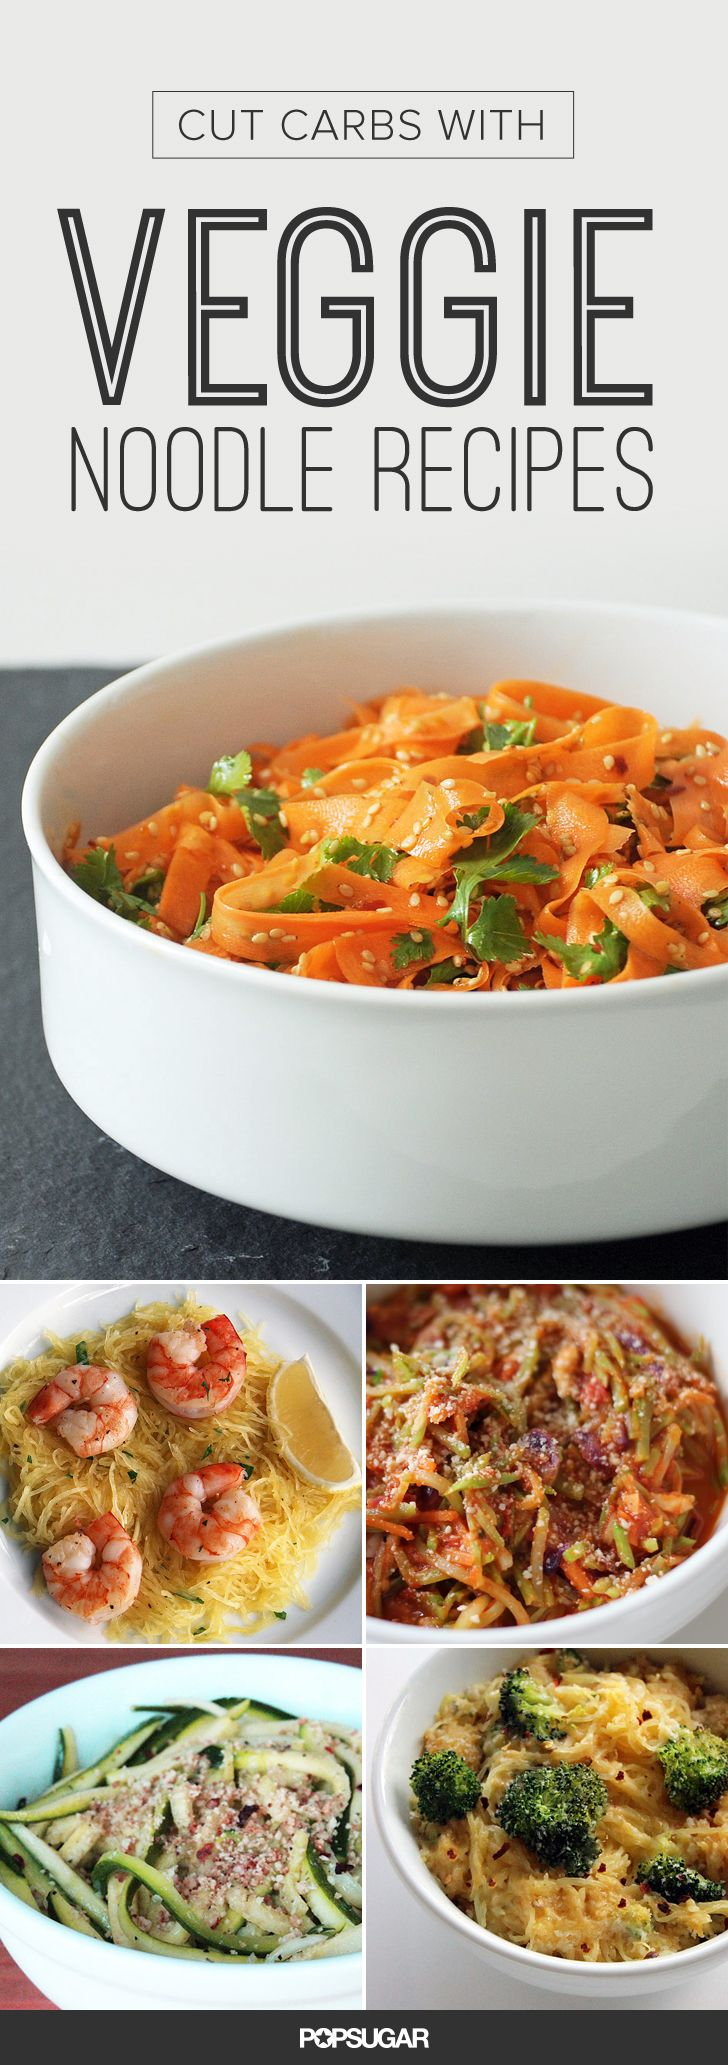 Cut Major Carbs With 11 Vegetable Spaghetti Recipes